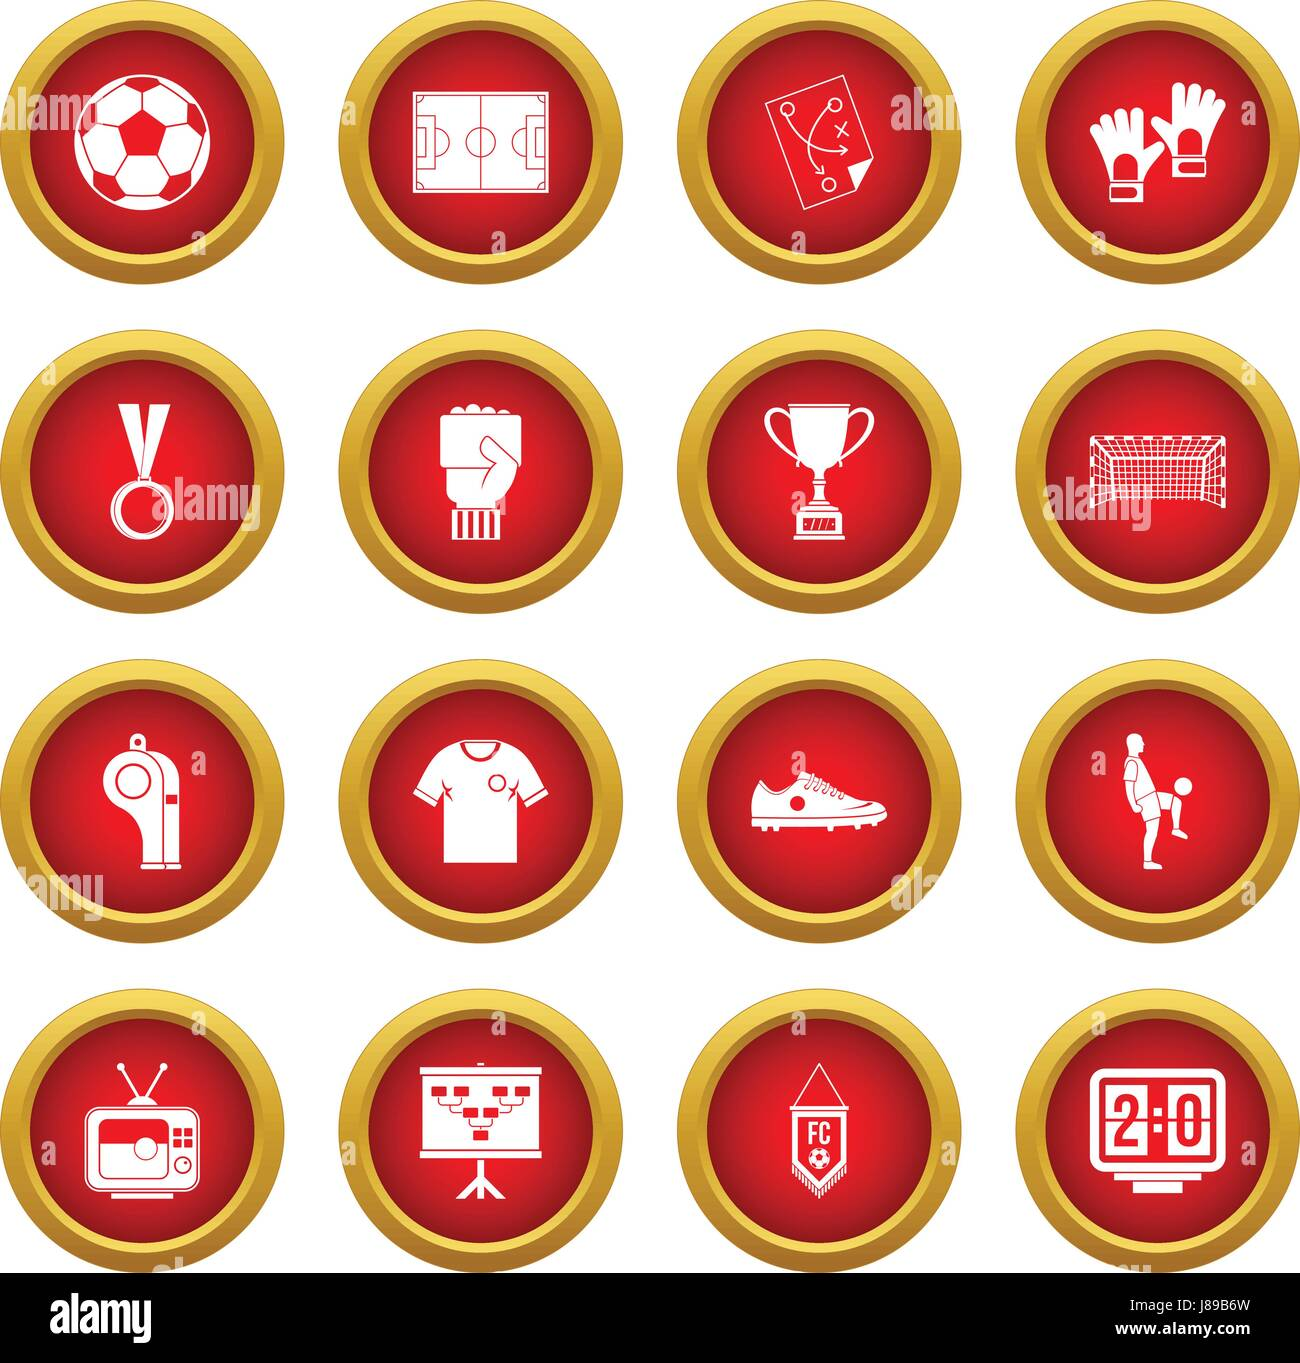 Soccer football icon red circle set - Stock Image